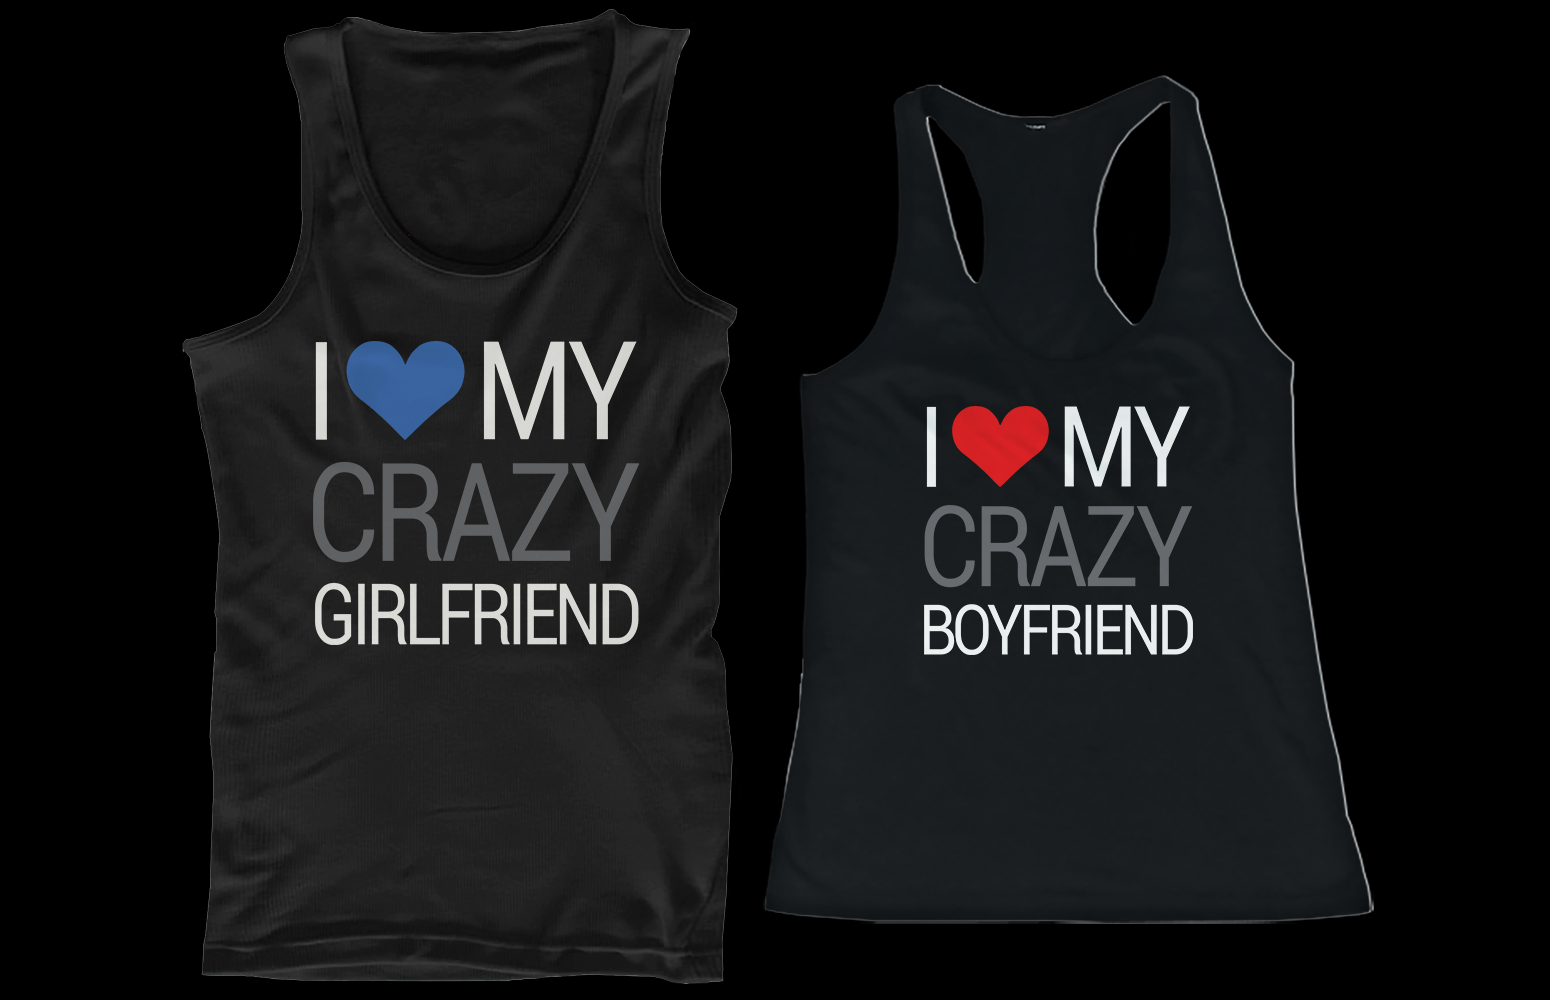 a40679ceb641d I Love My Crazy Boyfriend and Girlfriend from 365 Printing Inc